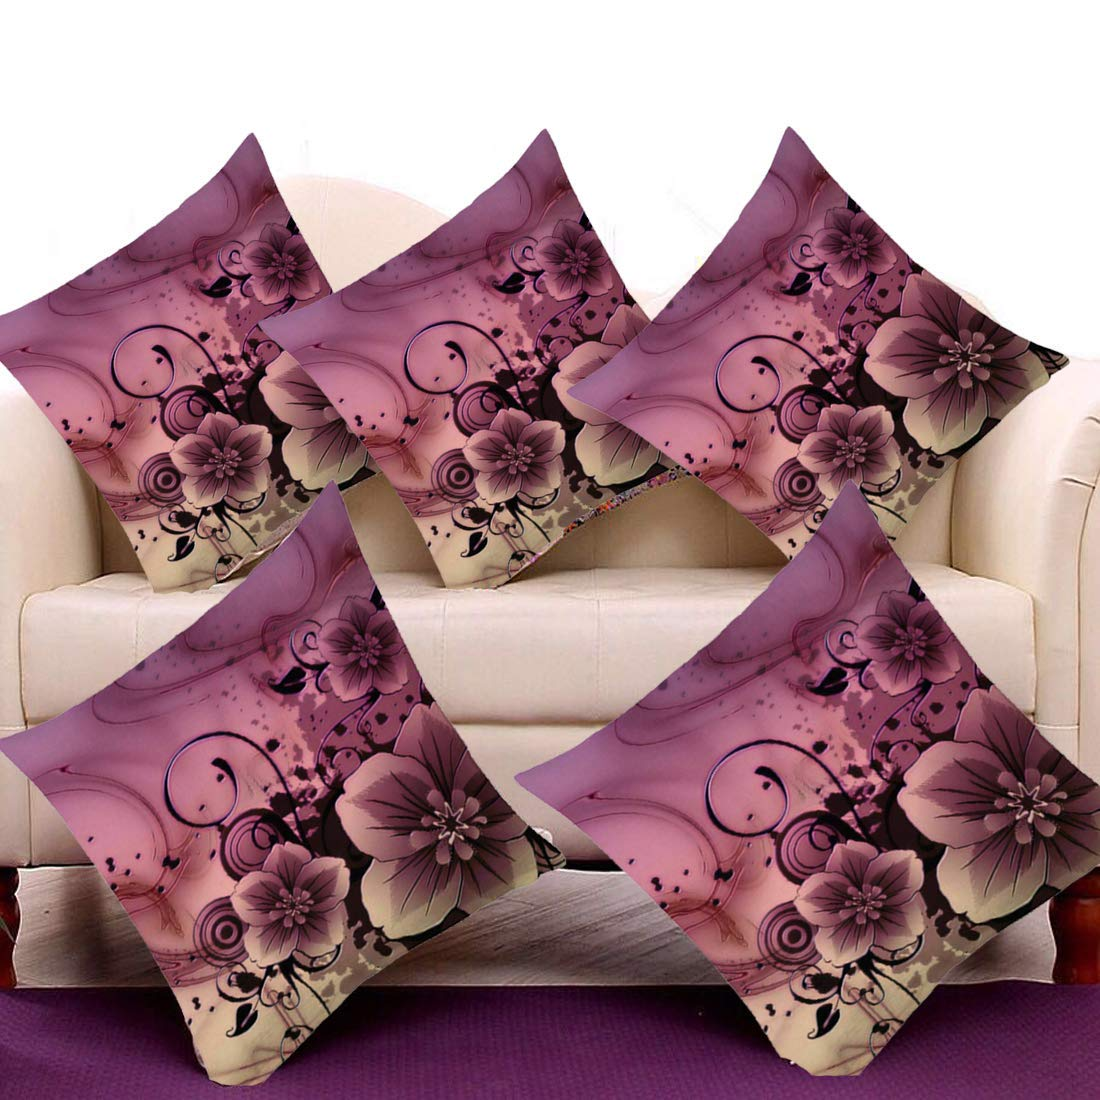 Lencol Jute Cushion Cover 16x16 Set of 5 with Digital Print in Multi Color (B07MJ35LX6) Amazon Price History, Amazon Price Tracker